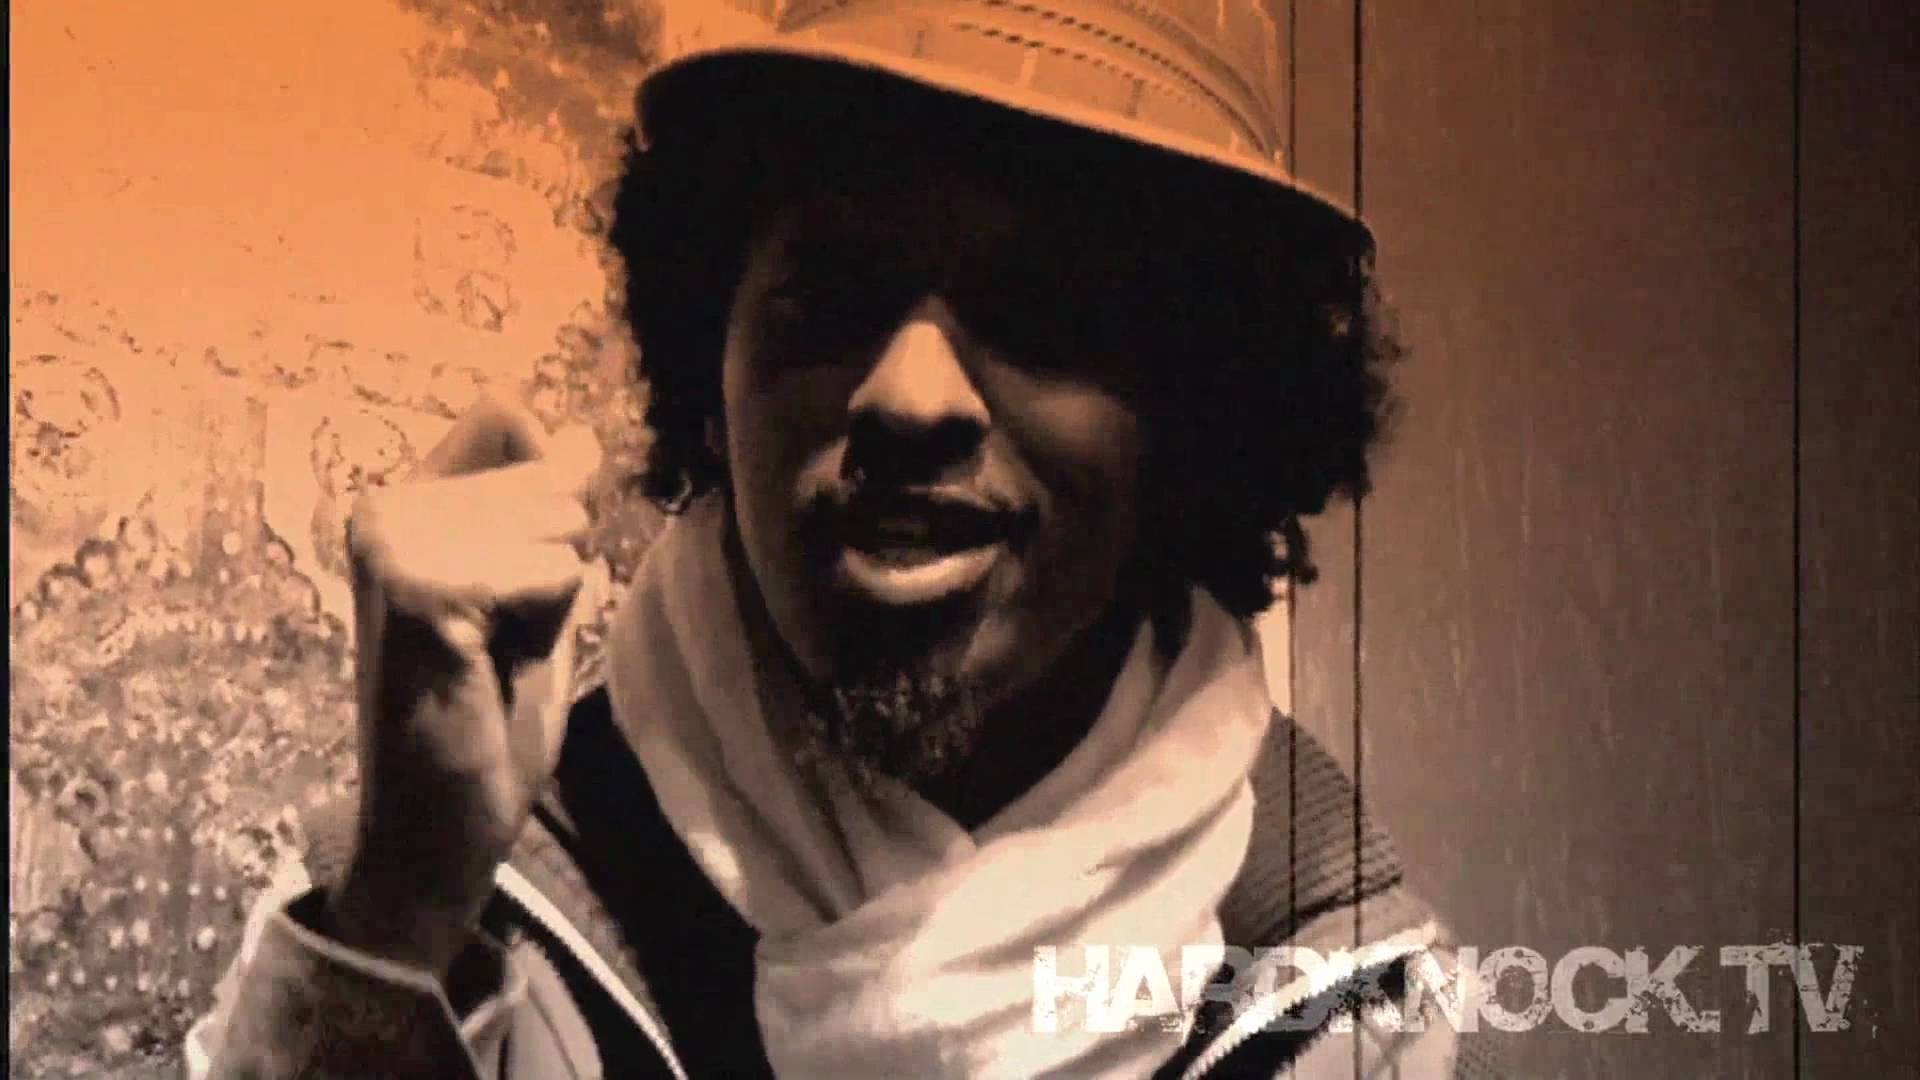 KNAAN calls out Gangsta Rap + Performs Whats Hardcore? acapella interview by Nick Huff Barili